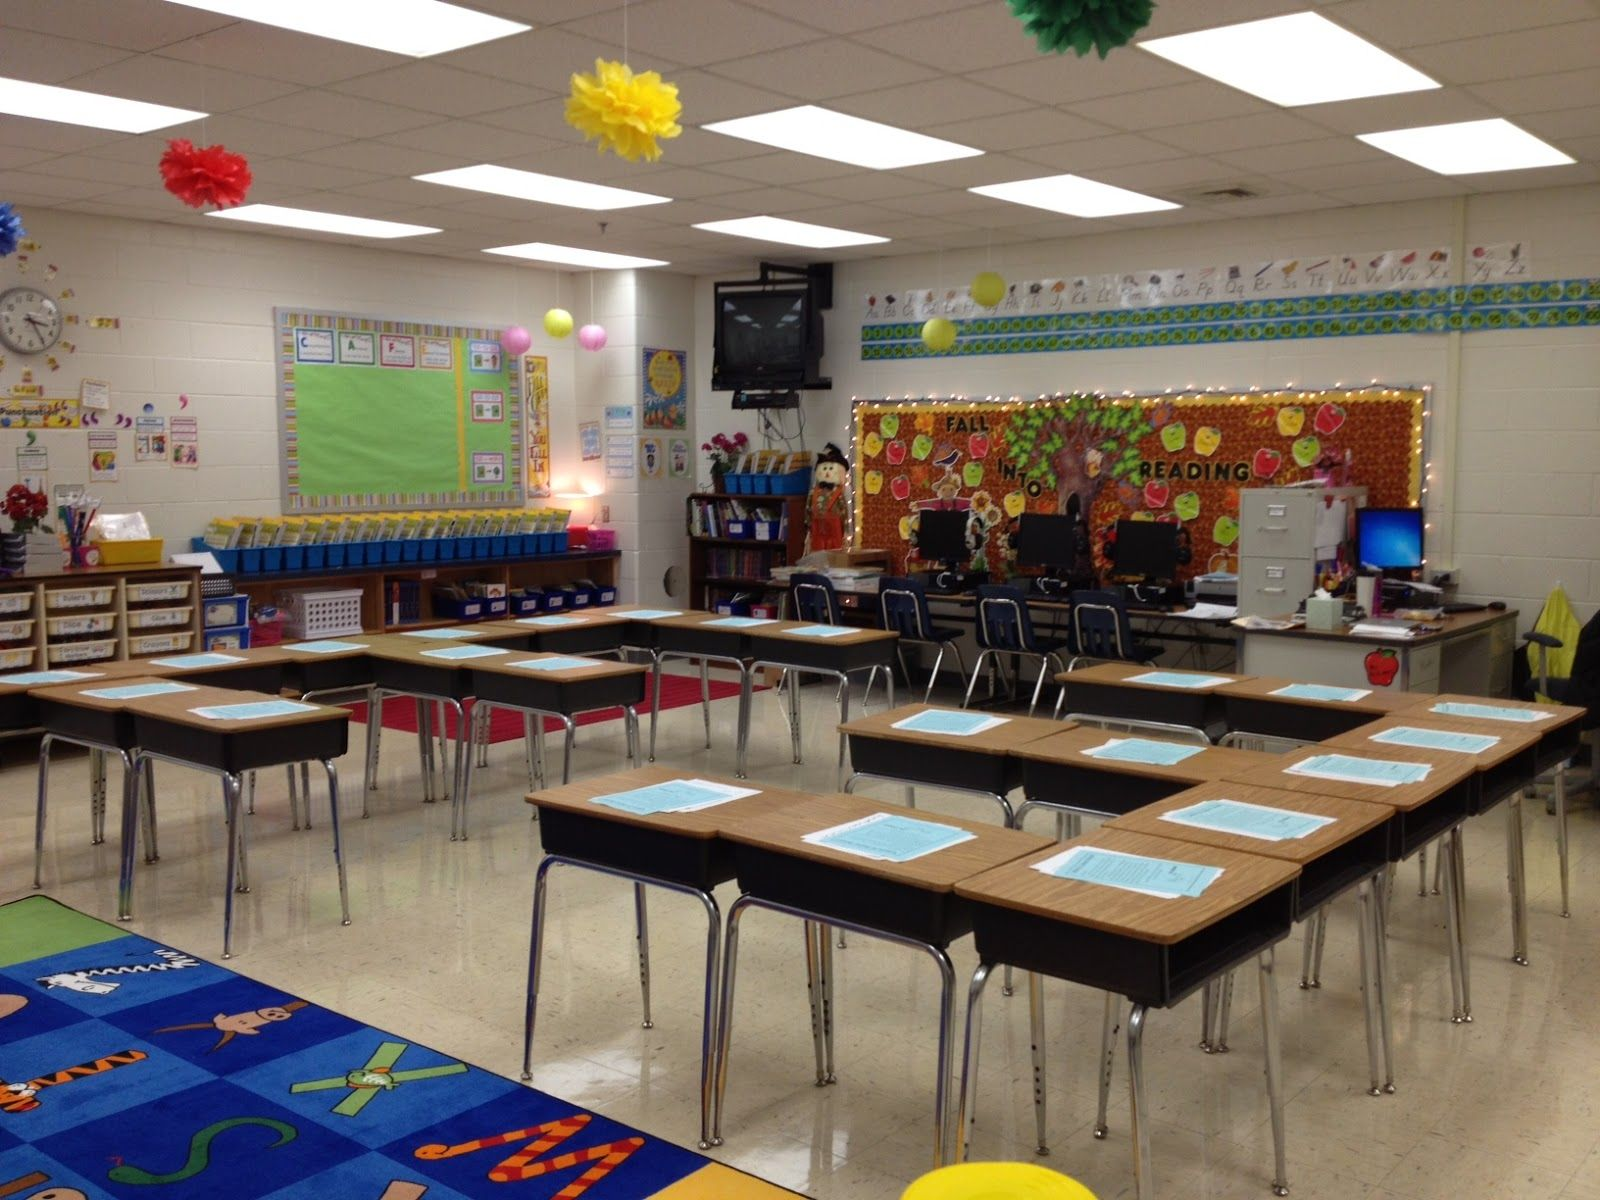 Classroom Design For Grade 8 : Here are some photos of my old classroom before leaving